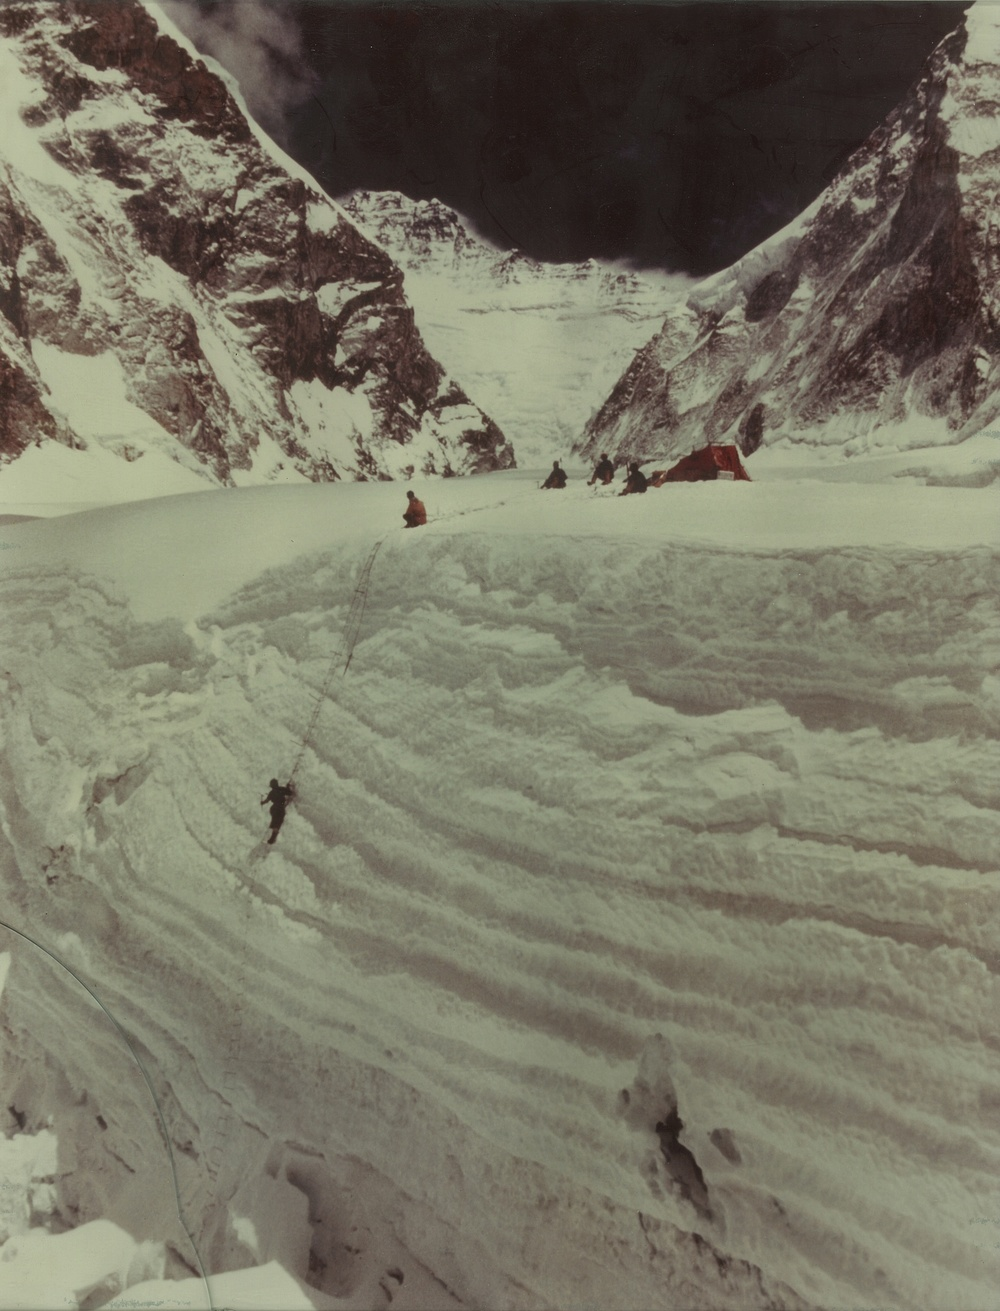 Dr. Miller and Barry Prather study historical snow accumulation of Khumbu Glacier during the 1963 US Everest Expedition.  Photo courtesy of the Miller family.